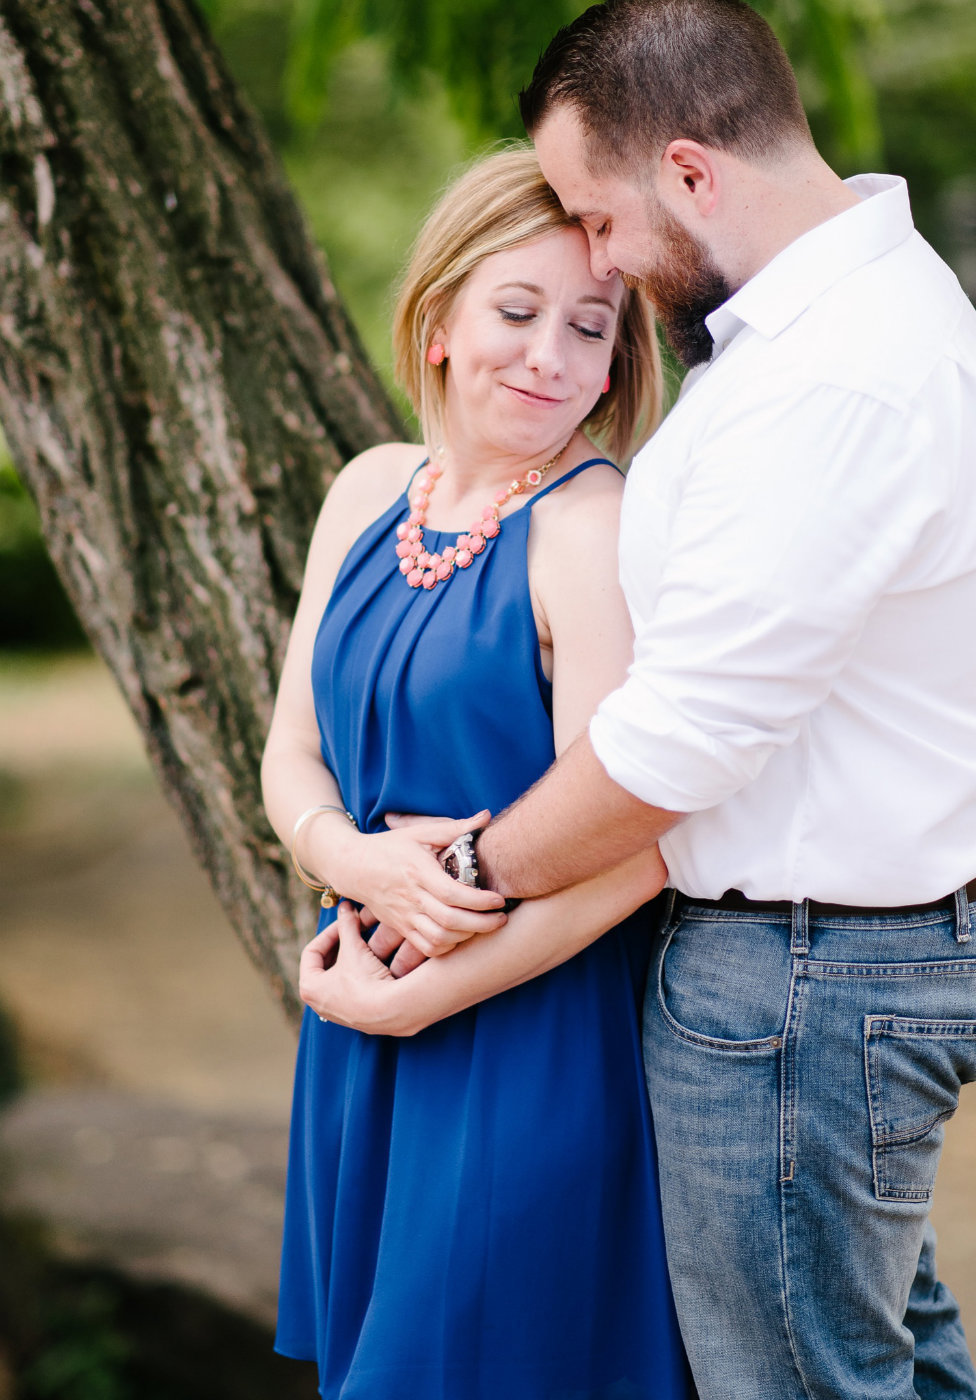 charleston_wedding_photographer___becky_williamson_photography___carolinas_wedding_photographer_349